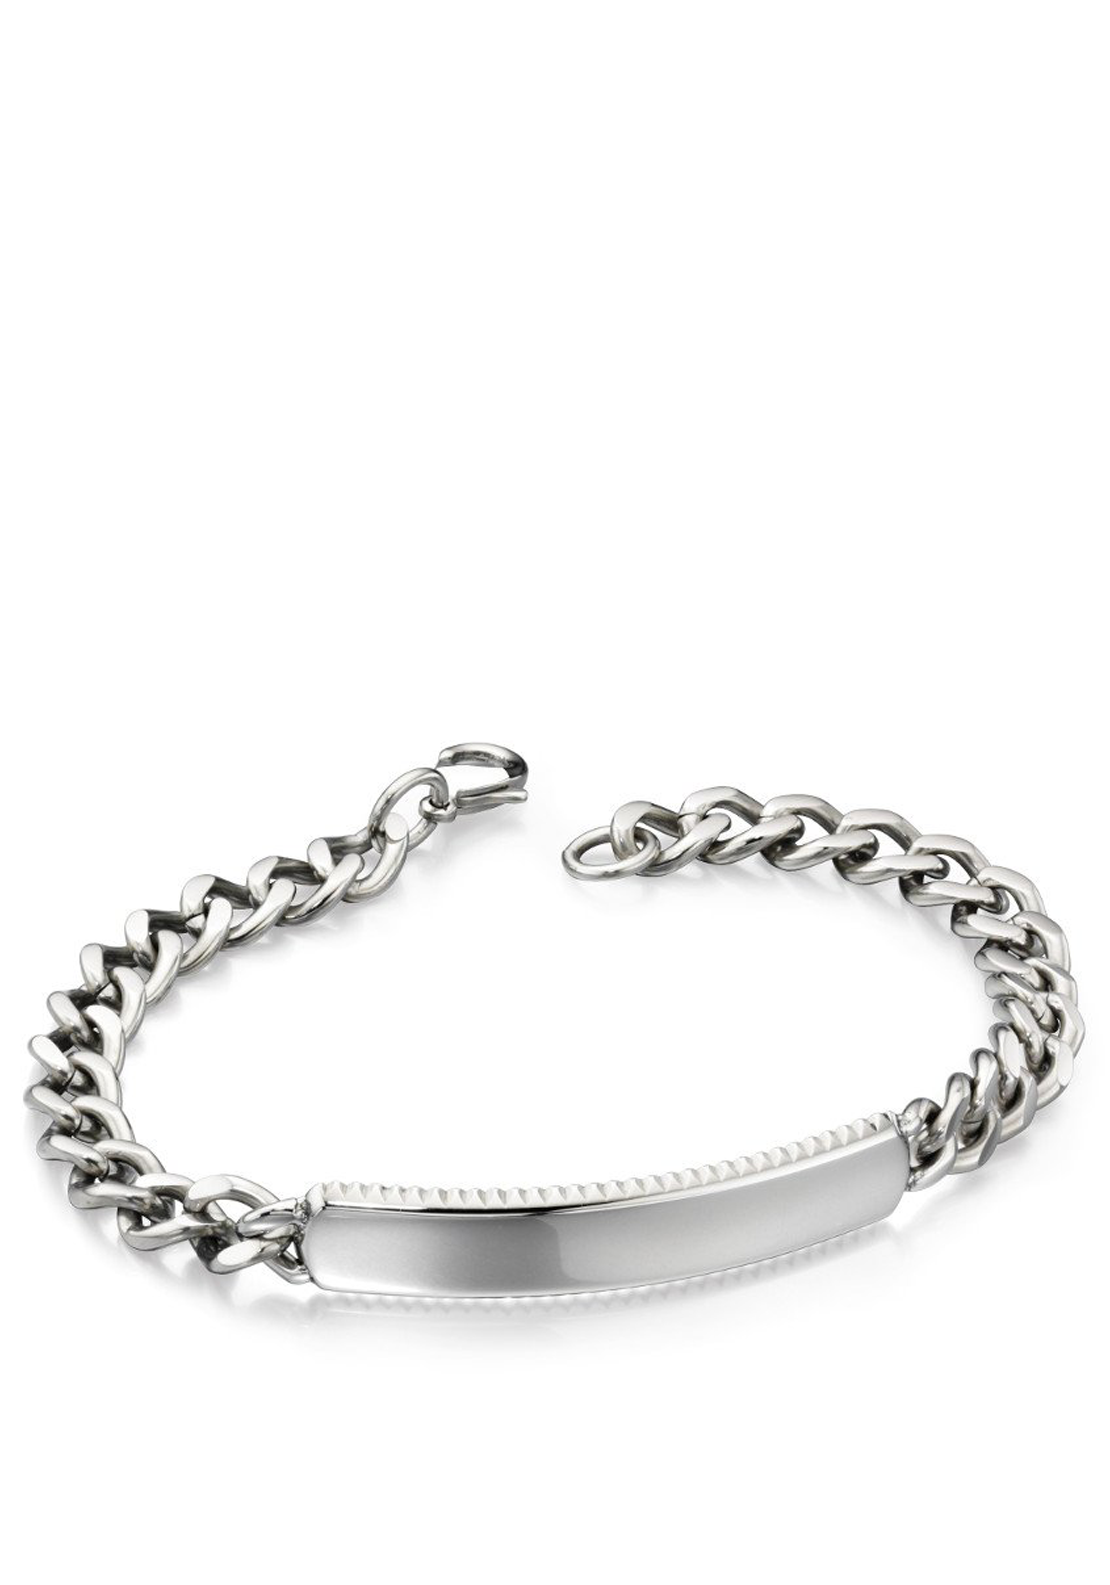 Fred Bennett Stainless Steel Id Bracelet for Men, Silver